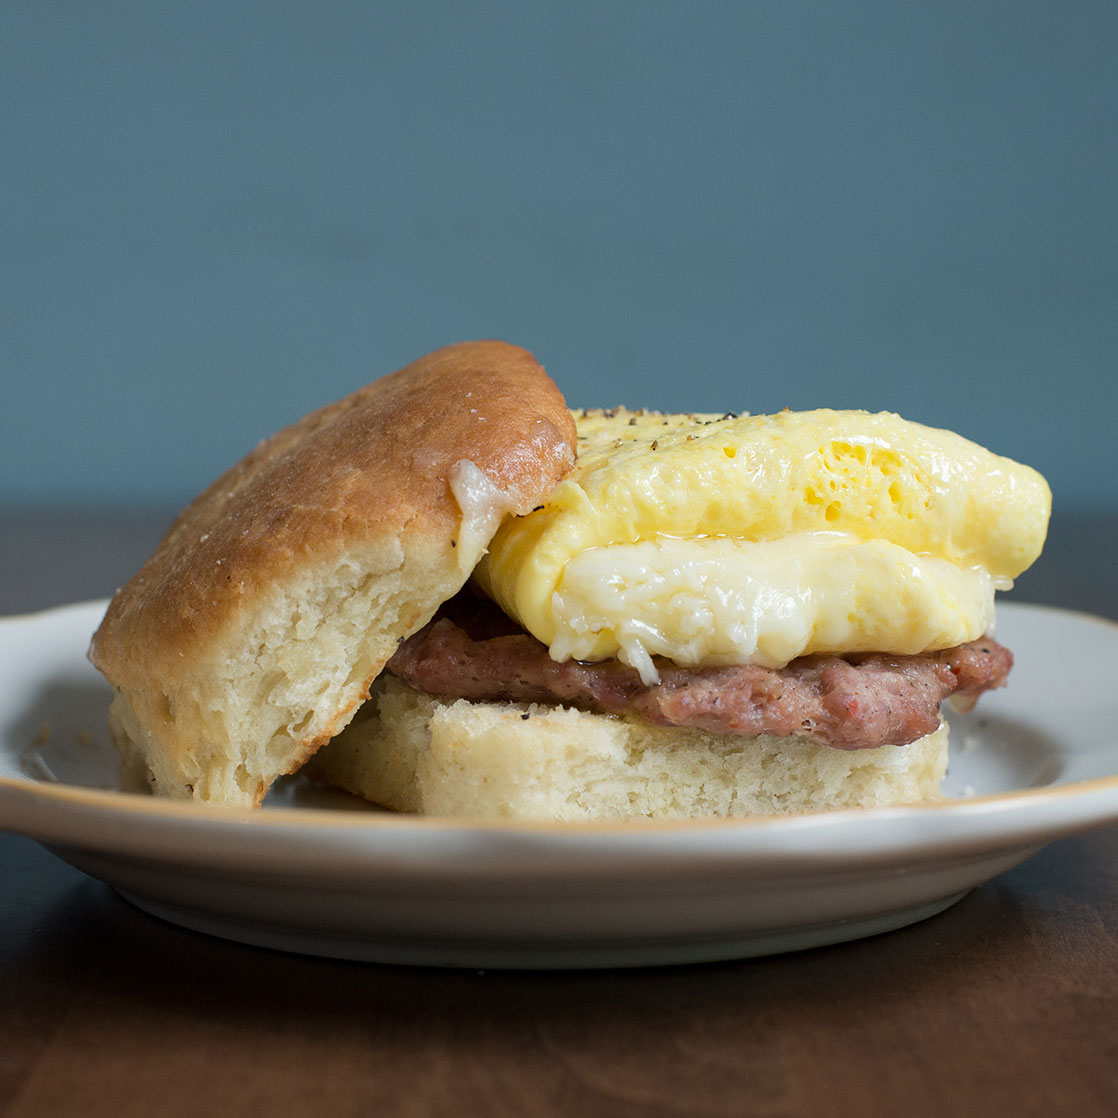 sausage-egg-cheese-biscuit-fwx